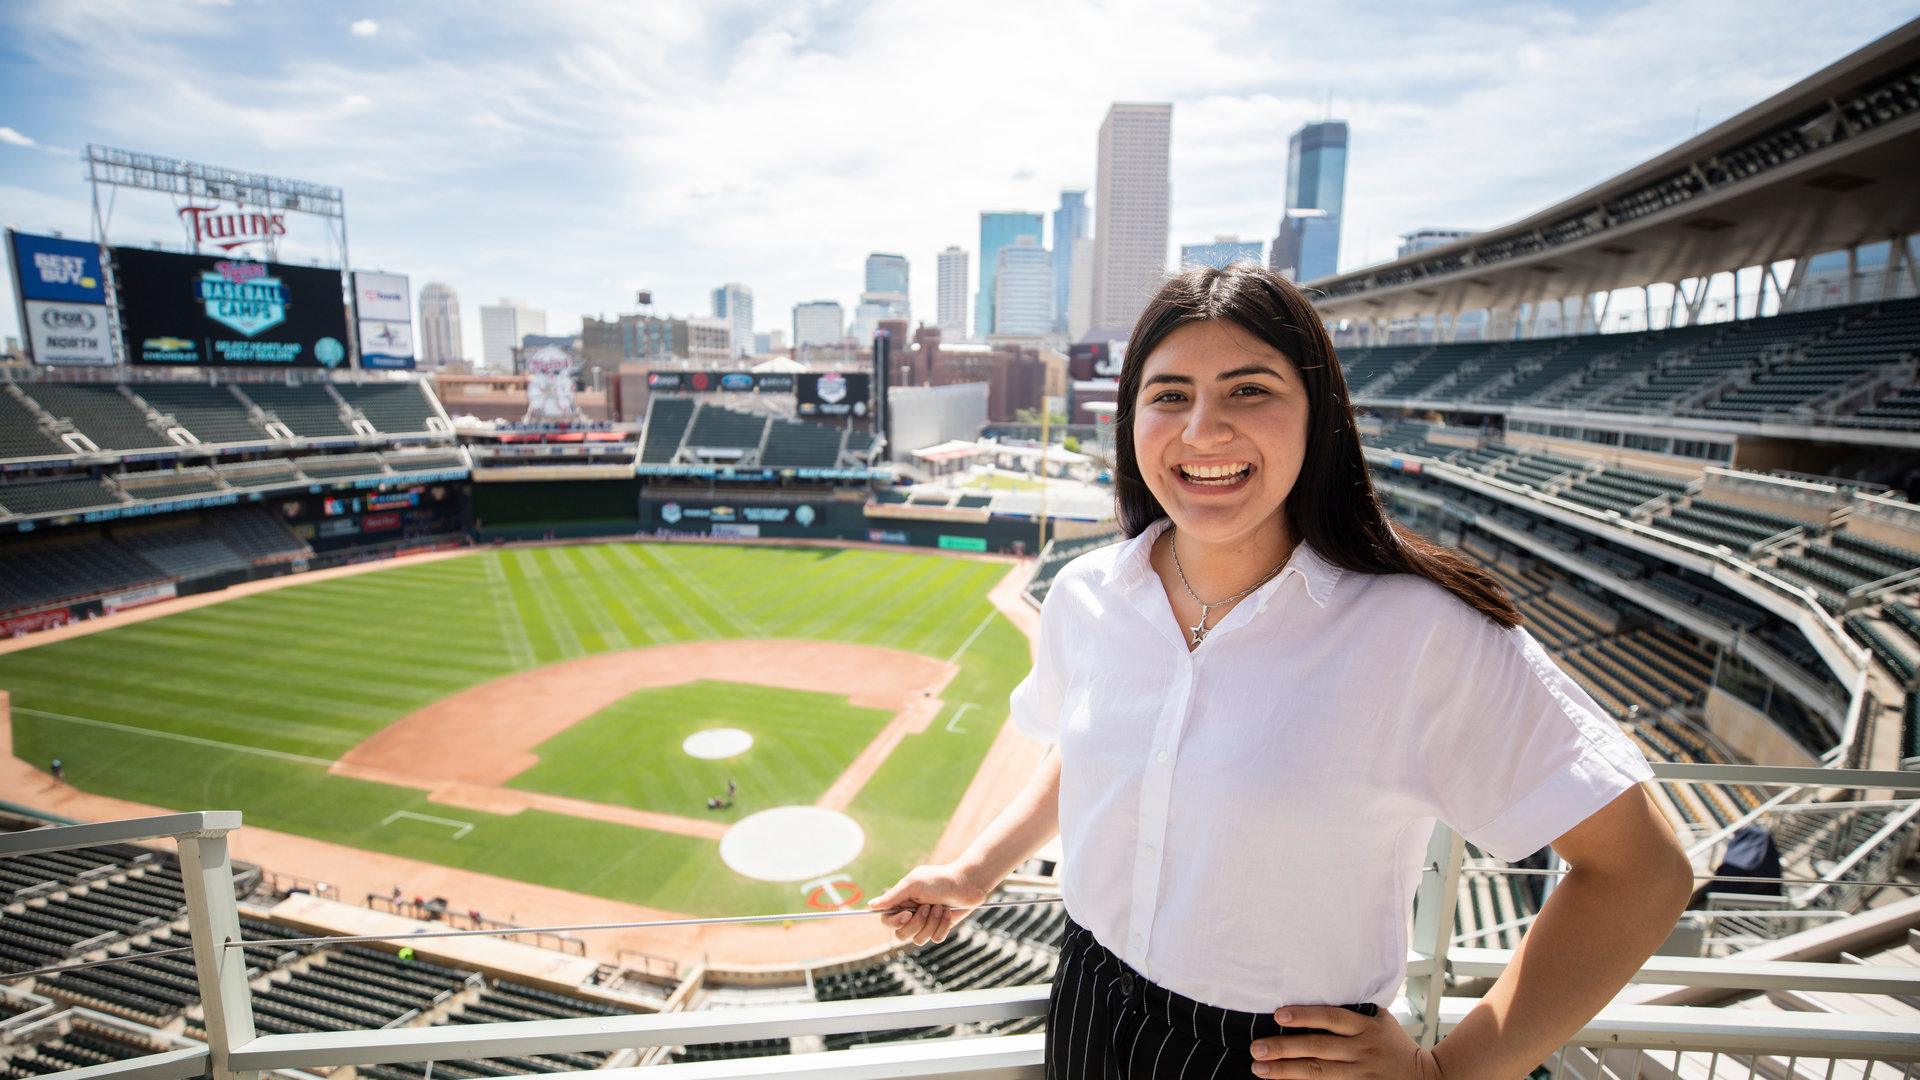 dfc student stands in the Twins stadium, the venue for her corporate internship